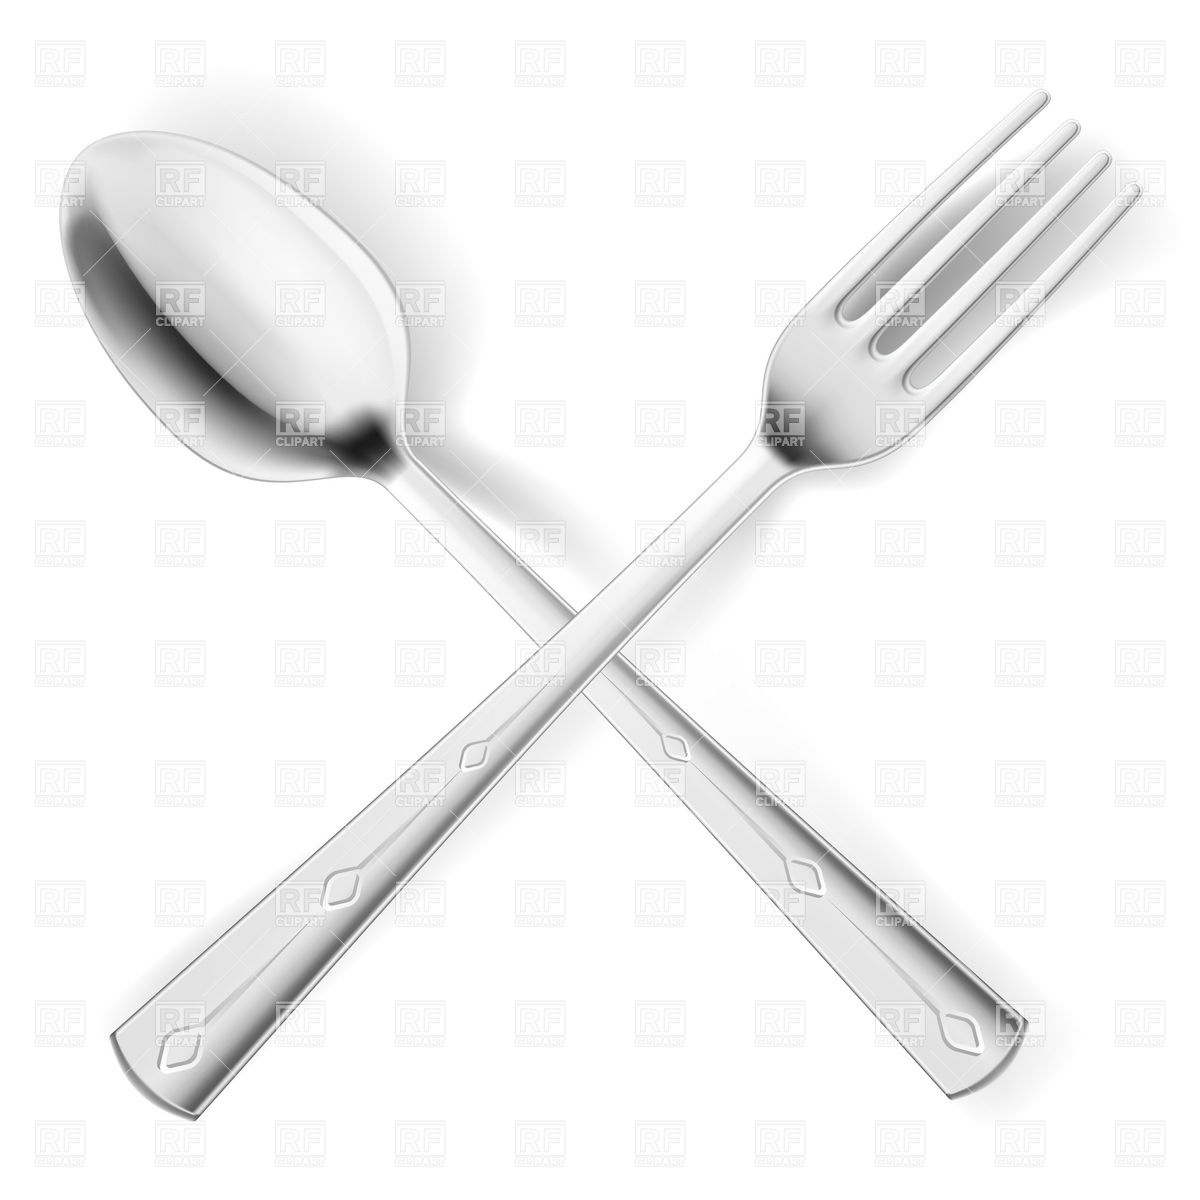 Crossed Spoon And Fork 7097 Food And Beverages Download Royalty